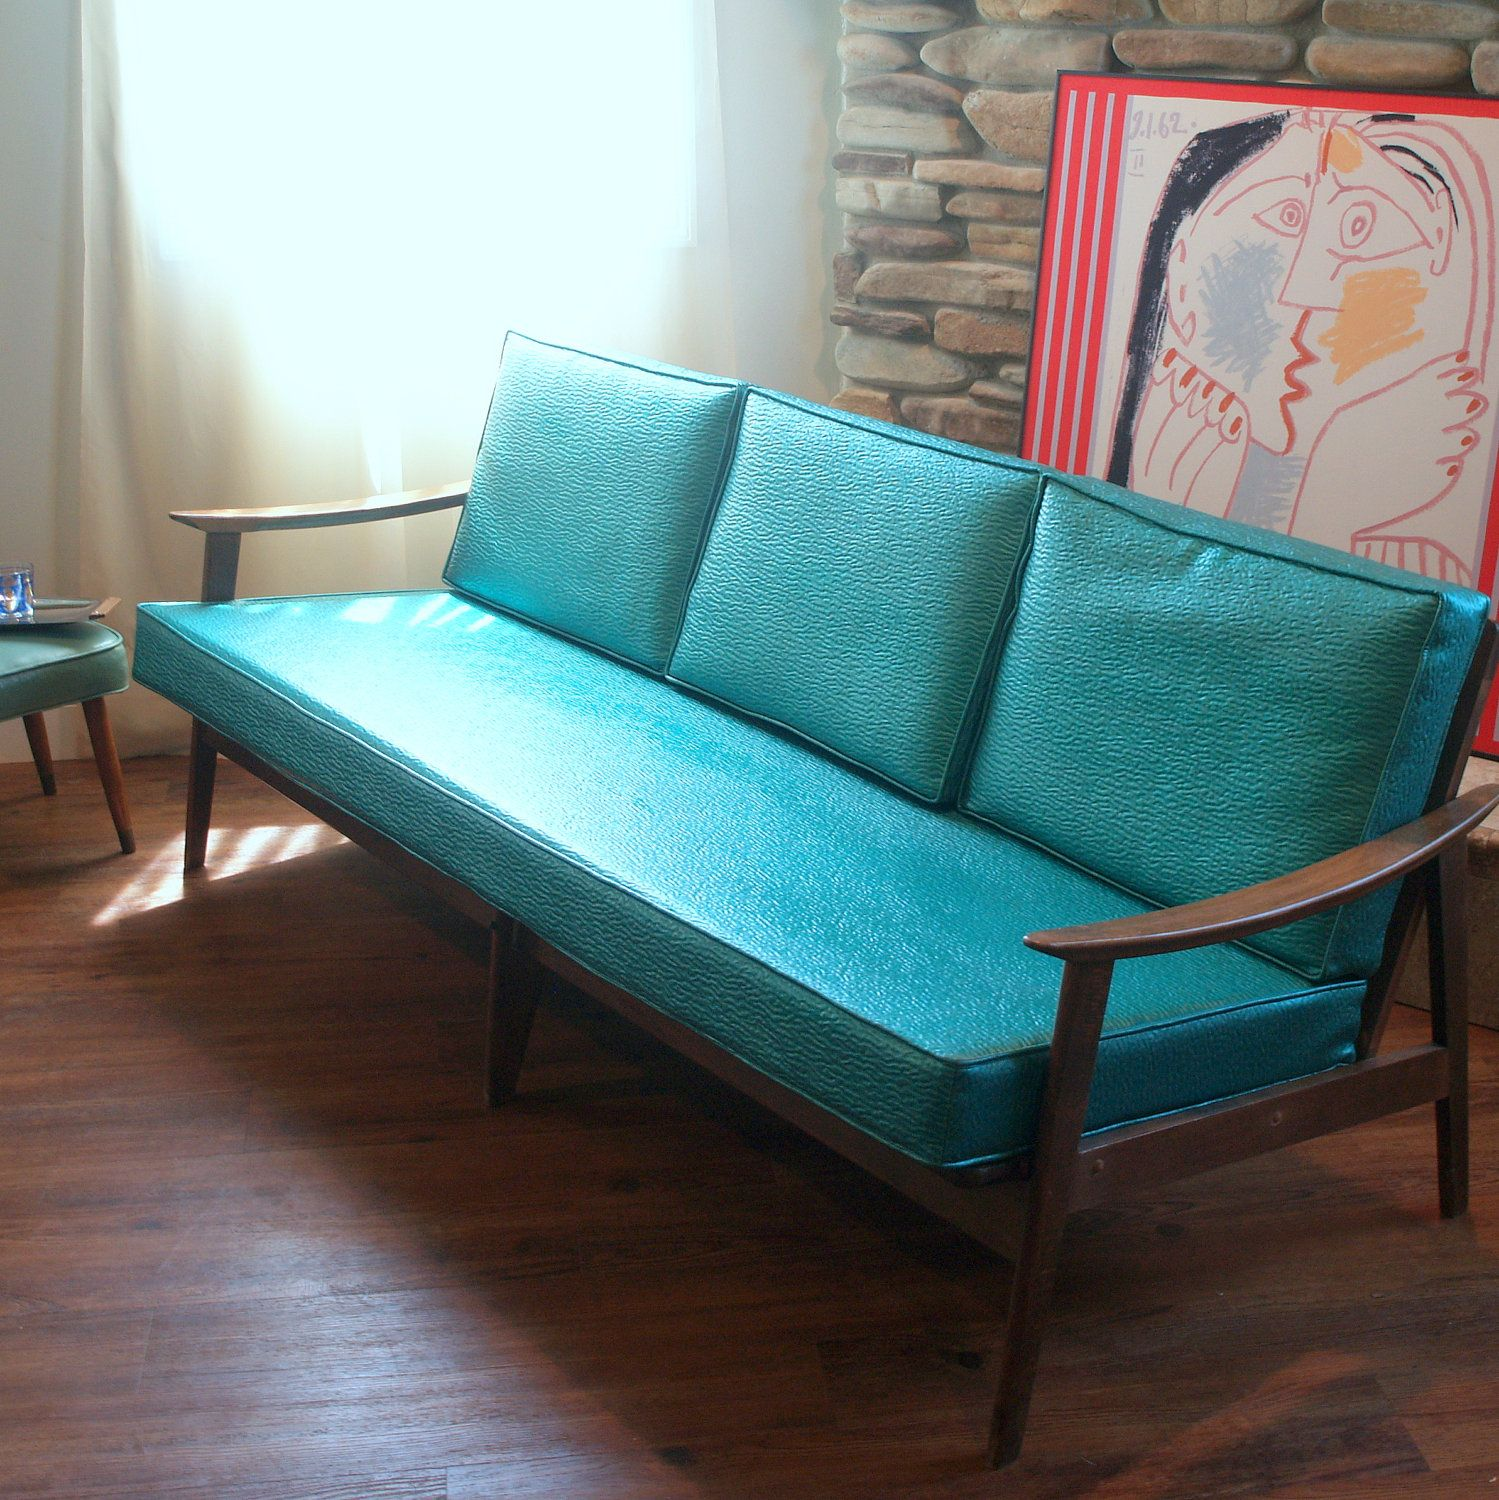 Vintage Danish Modern Sofa Lovely Mid Century Modern Furniture Lounge Style  Solid Wood Teal And Walnut European Made Chicago Listing